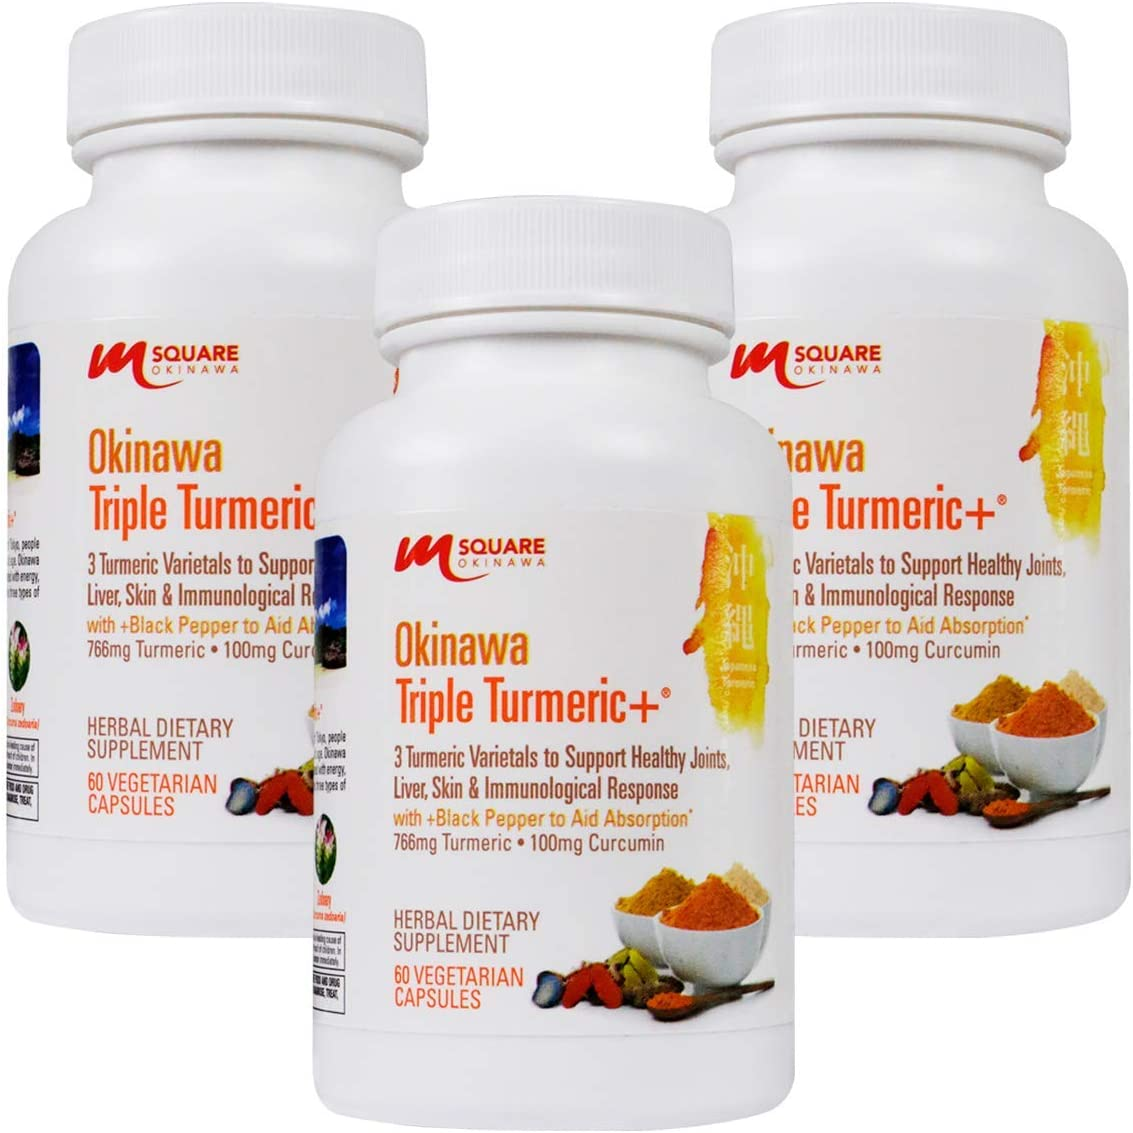 Okinawa Triple Turmeric 3 Turmeric Varietals with Black Pepper to Aid Absorption. 180 Vegetarian Capsules. 3 Bottles